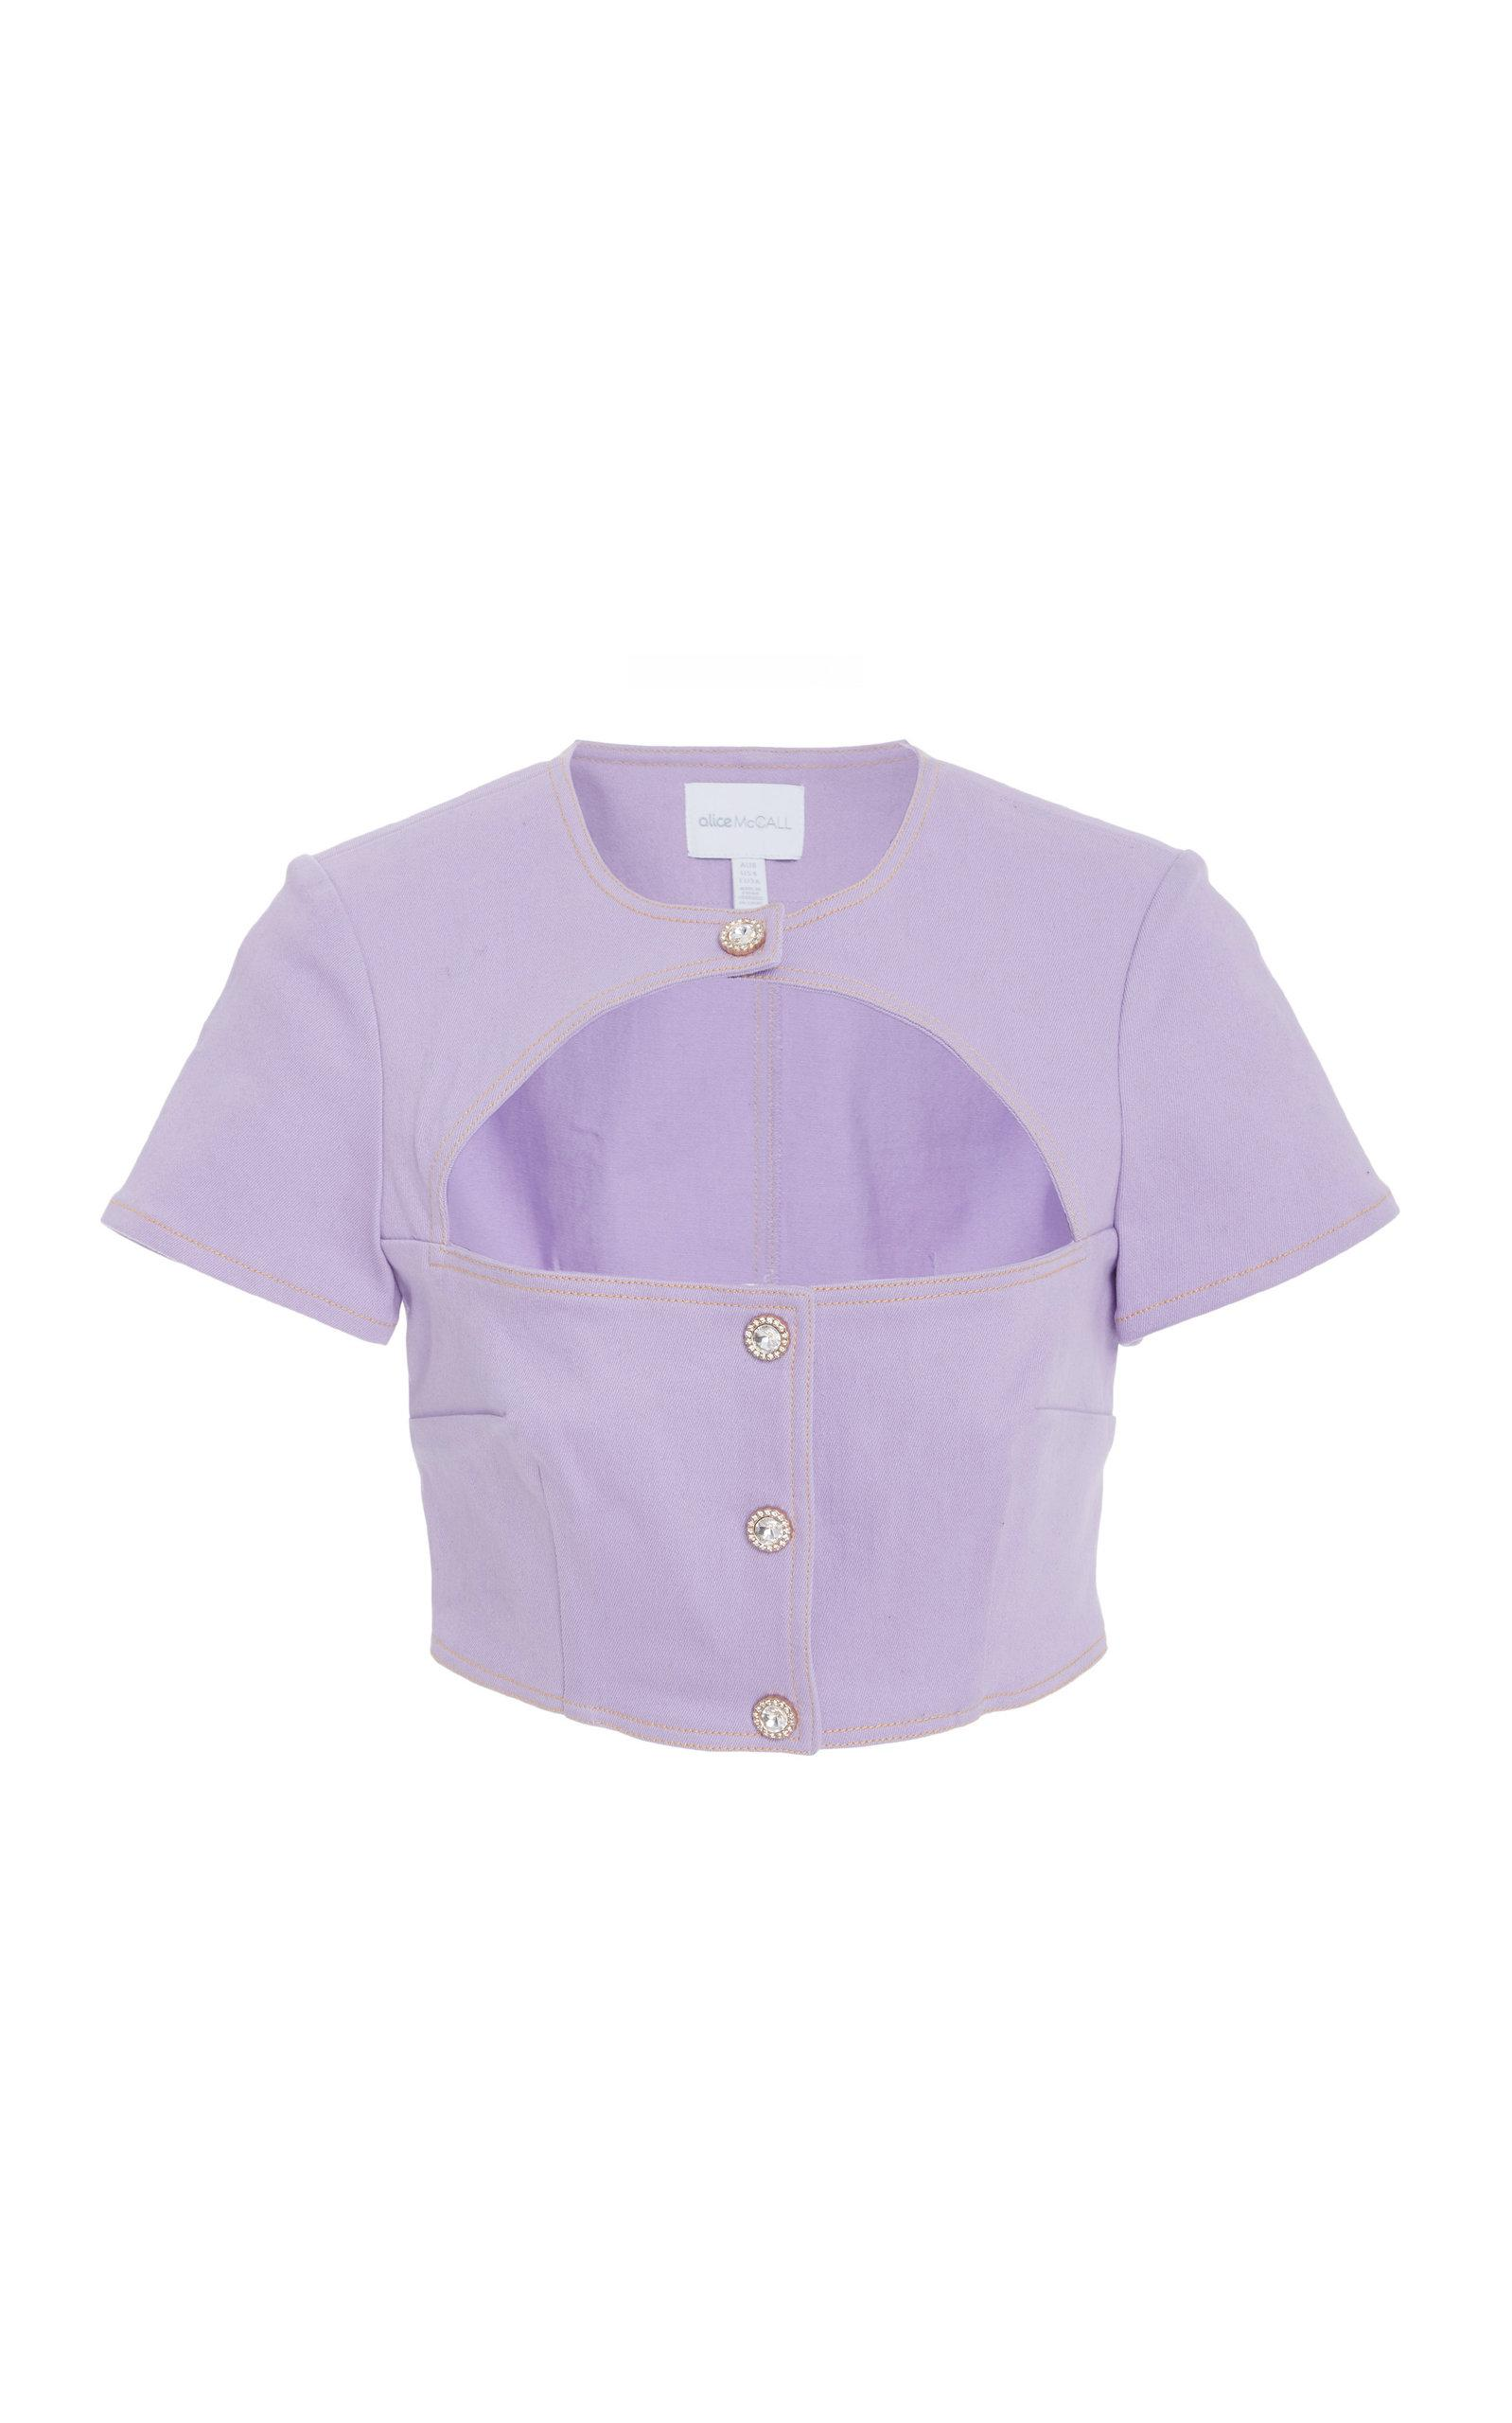 Alice Mccall Somebody's Baby Top In Purple